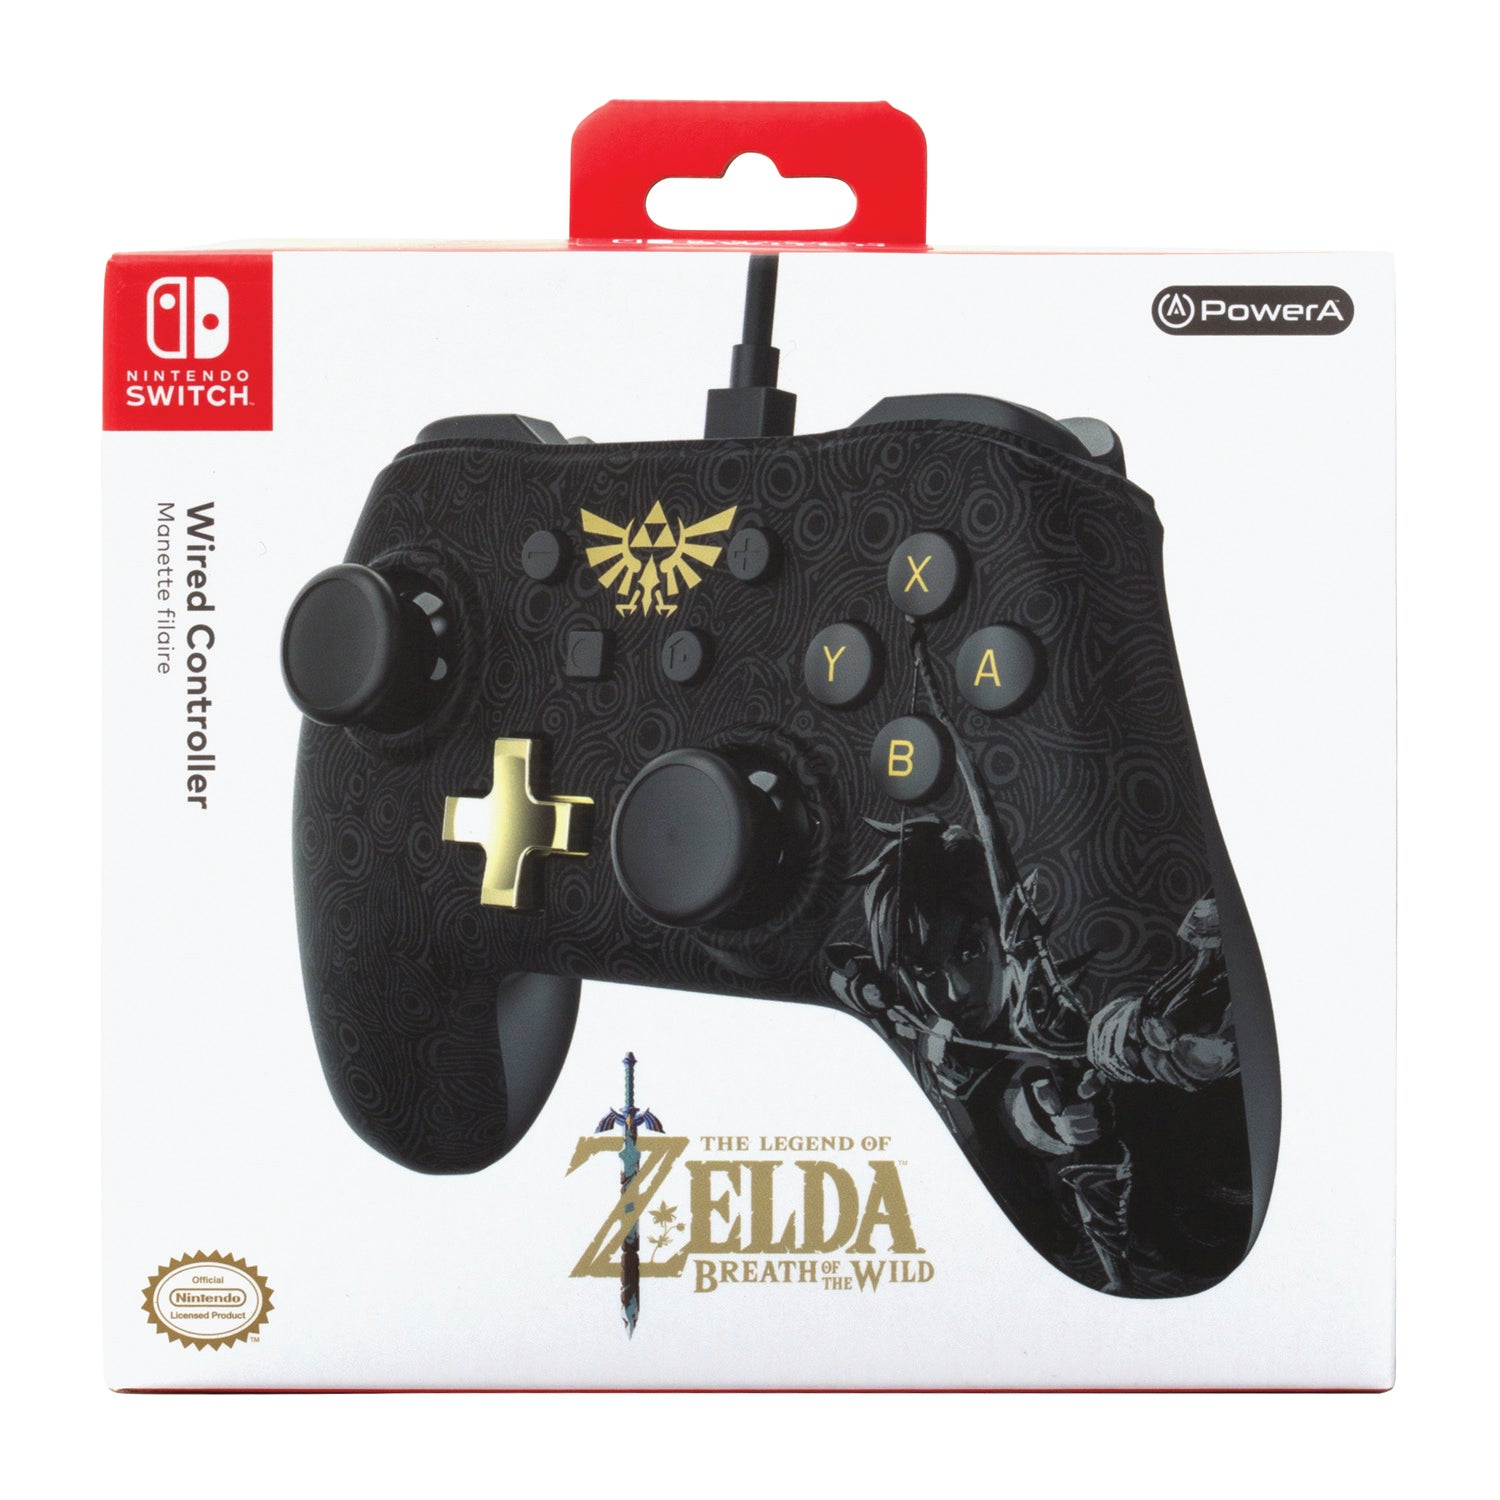 PowerA Wired Controller for Nintendo Switch, The Legend of Zelda: Breath of the Wild